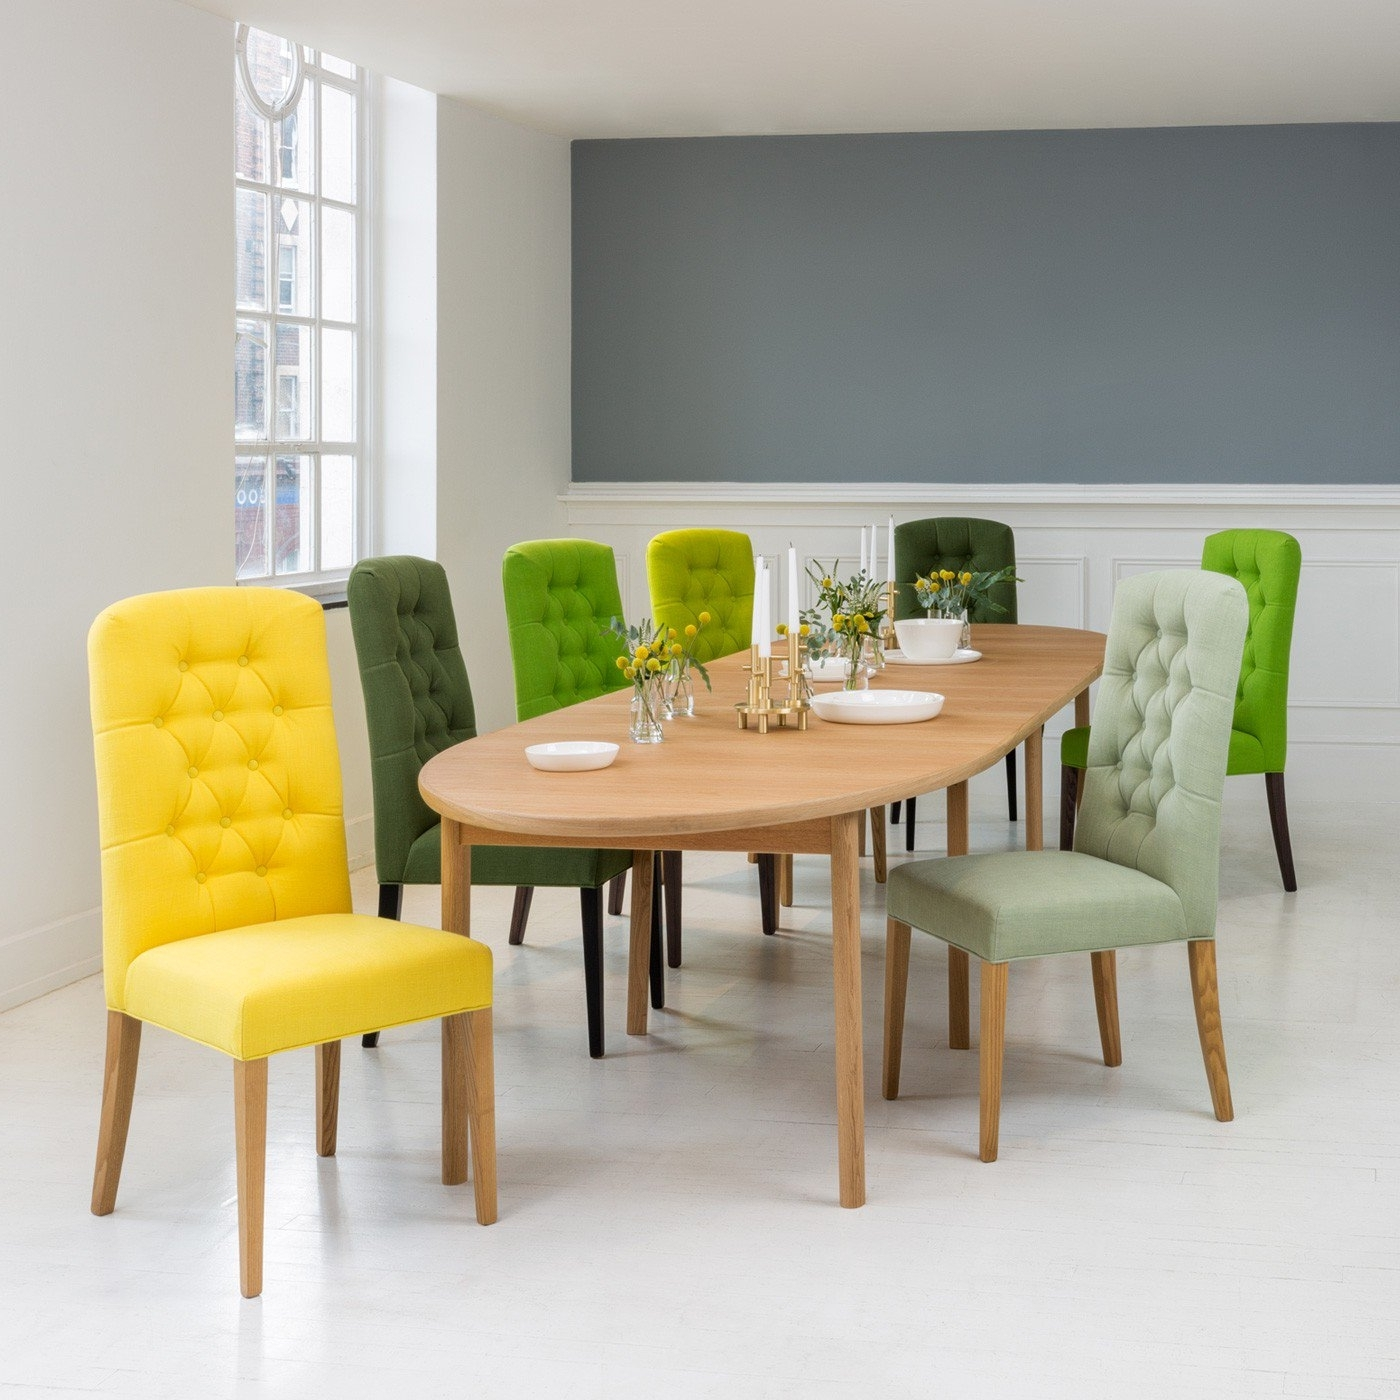 Newest 10 Seater Dining Tables And Chairs For Heal's Ellipse Extending Dining Table 6 – 10 Seater (Gallery 3 of 25)